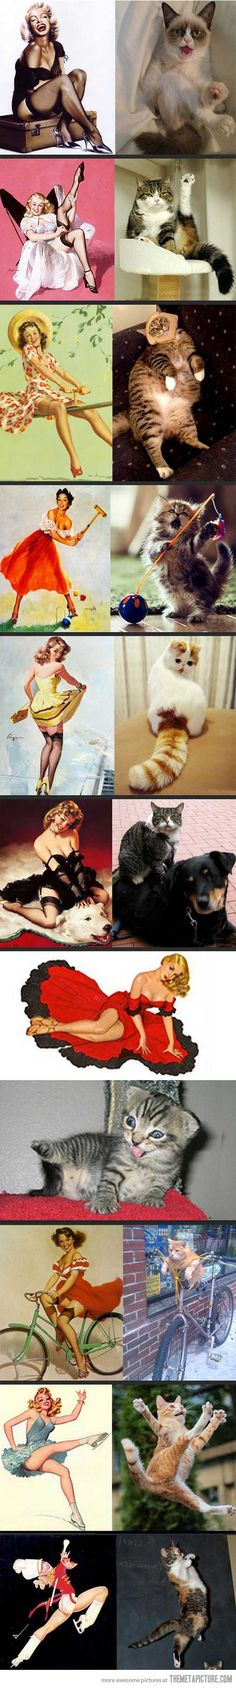 Pin-up cats!